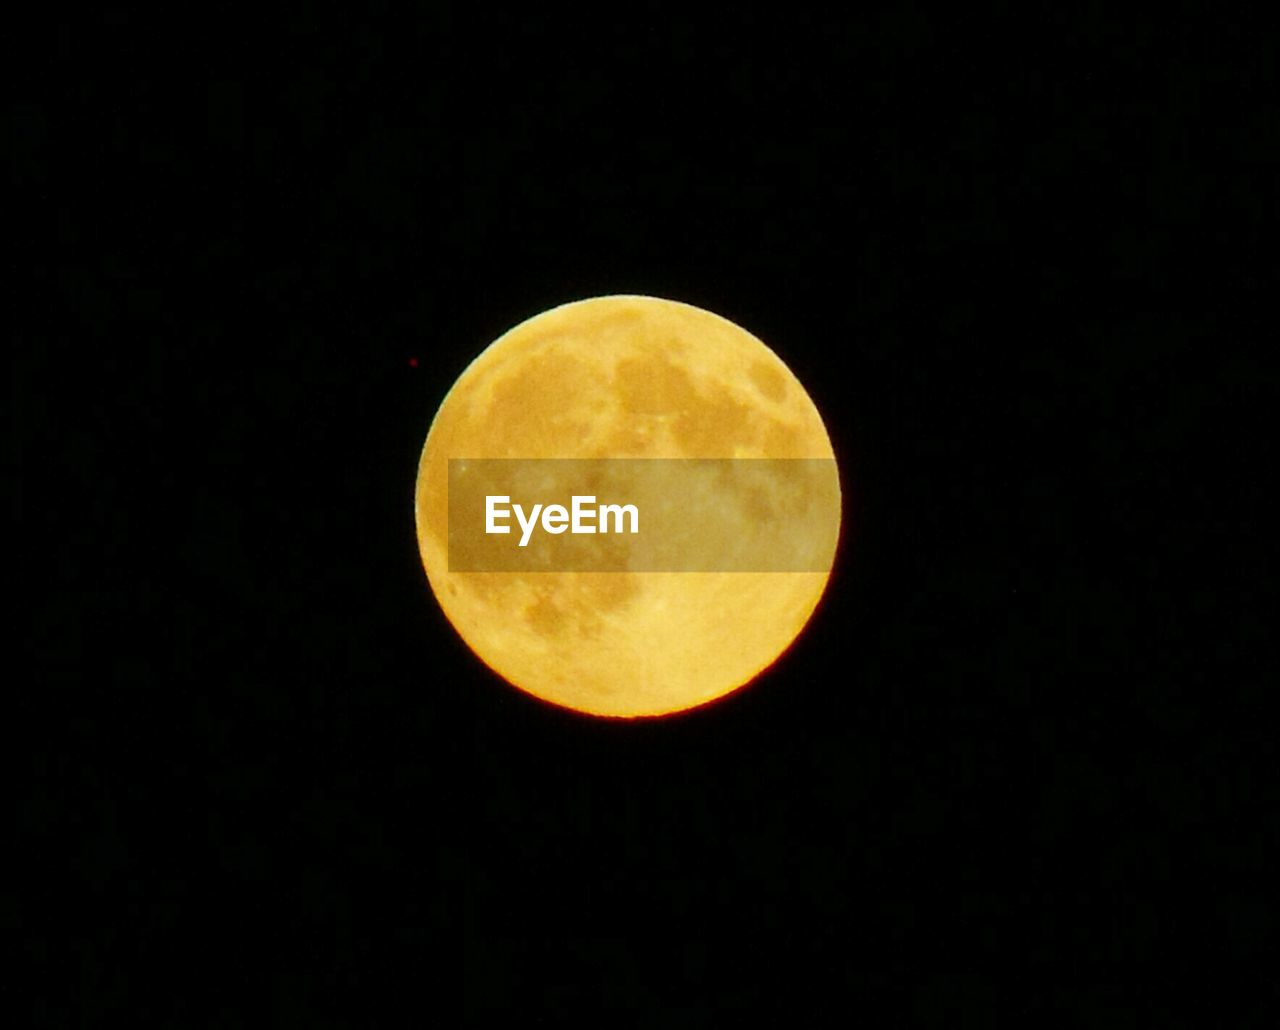 moon, night, beauty in nature, astronomy, full moon, circle, nature, moon surface, planetary moon, scenics, no people, low angle view, tranquility, tranquil scene, yellow, outdoors, clear sky, space exploration, sky, space